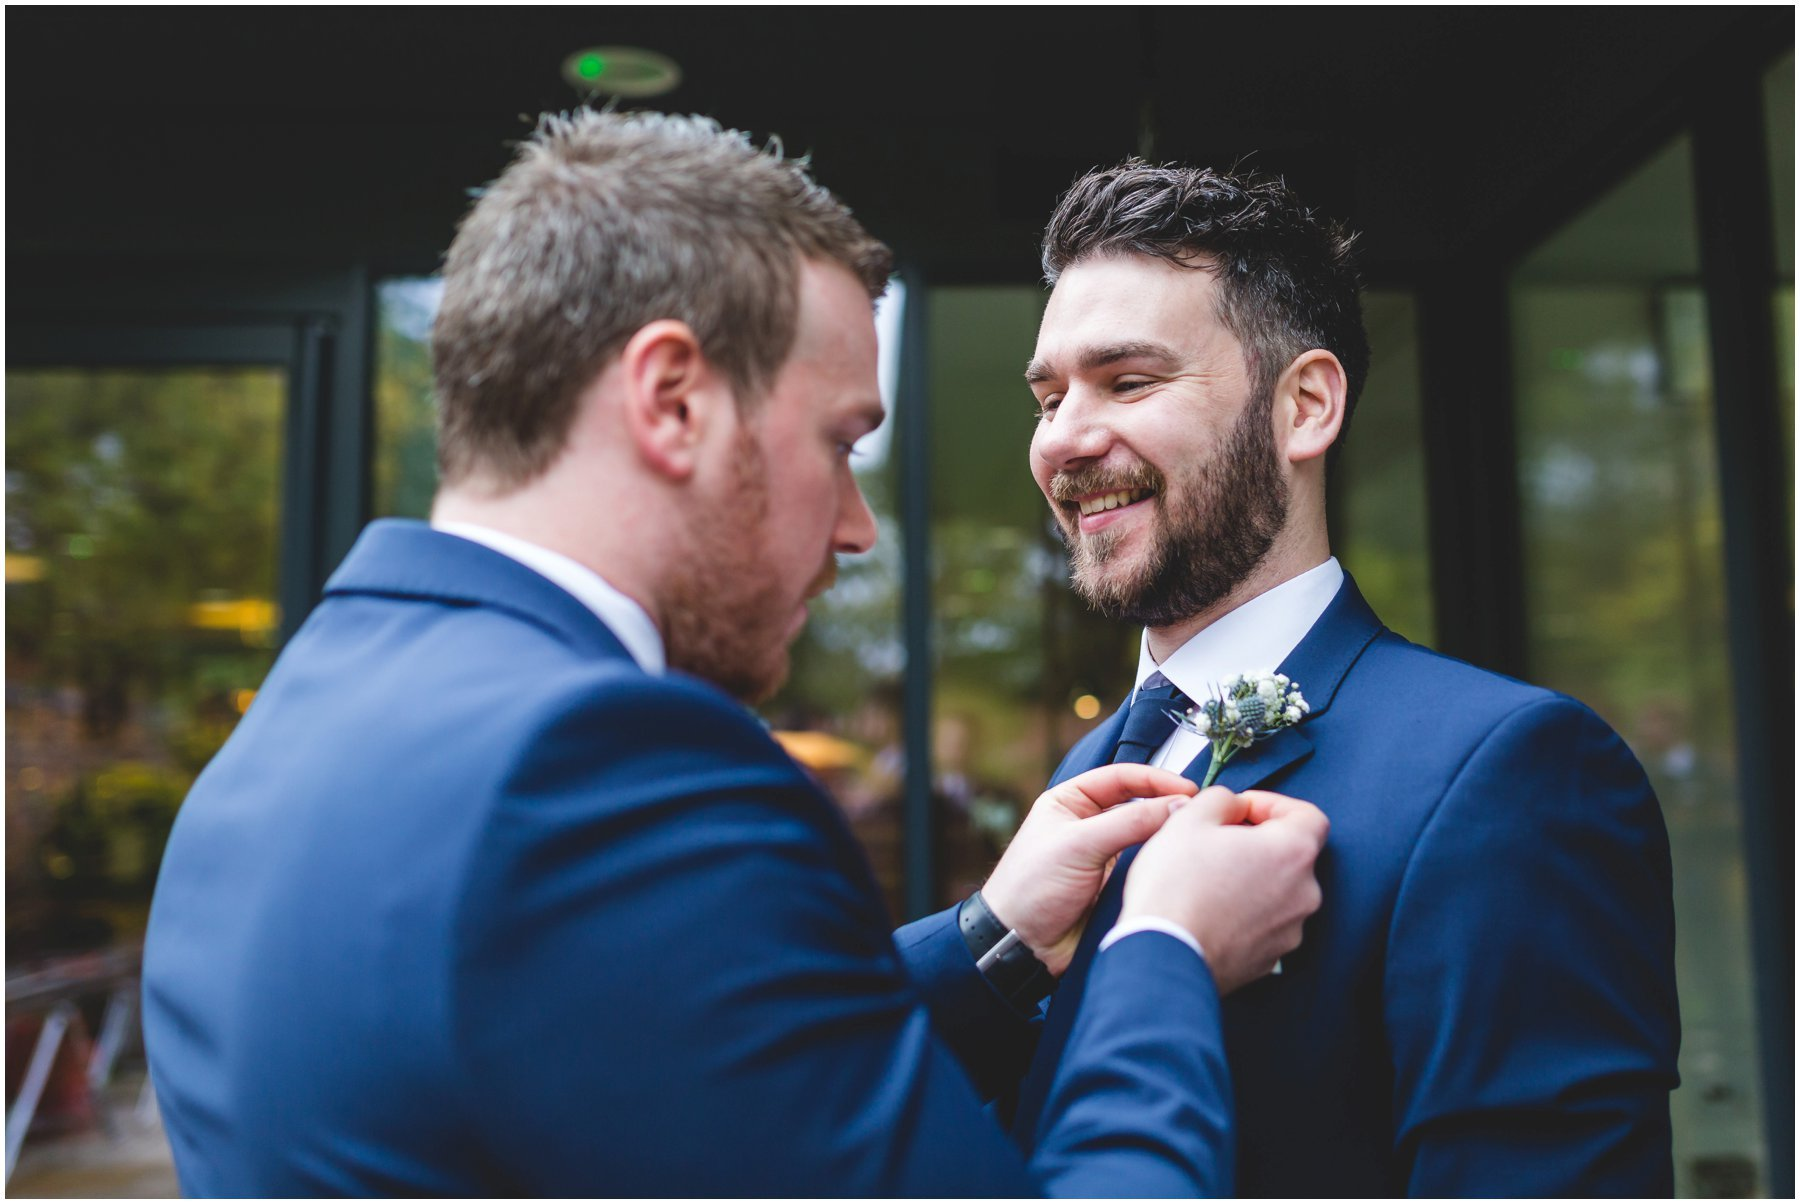 THE NORFOLK MEAD HOTEL WEDDING - DAVID AND SAMANTHA - NORWICH WEDDING PHOTOGRAPHER 4